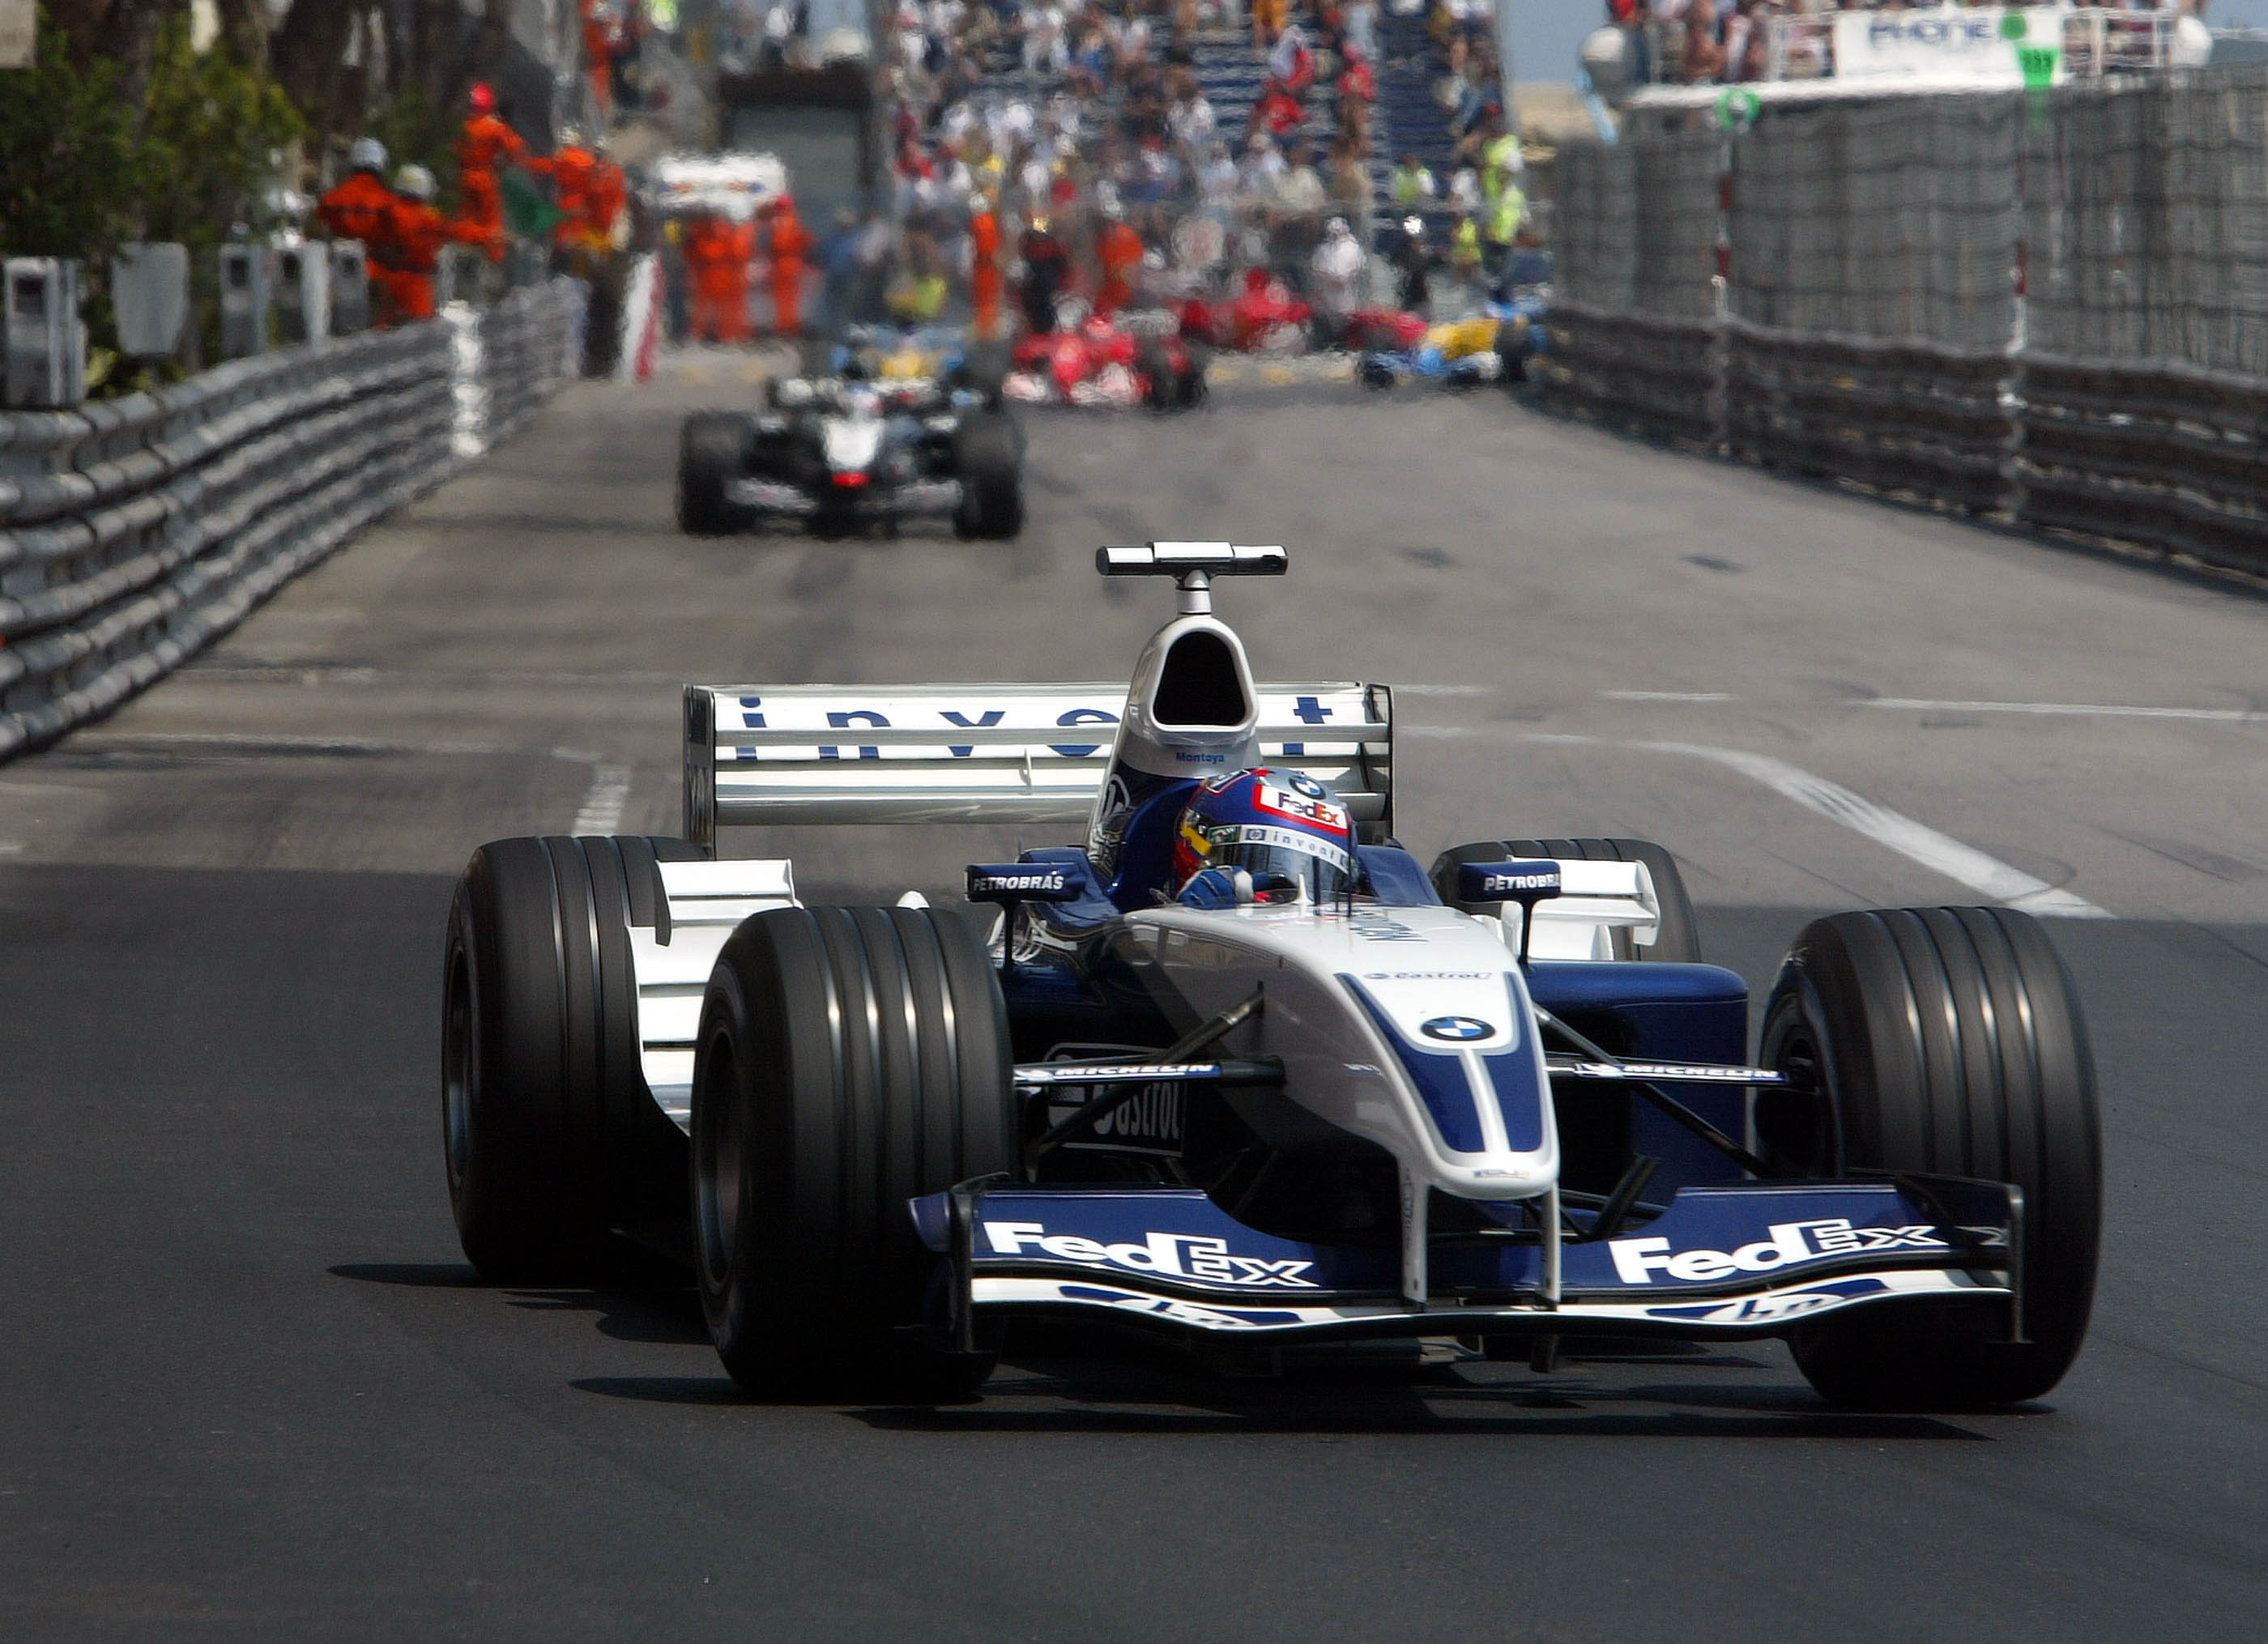 Juan Pablo Montoya Williams Monaco Grand Prix 2003